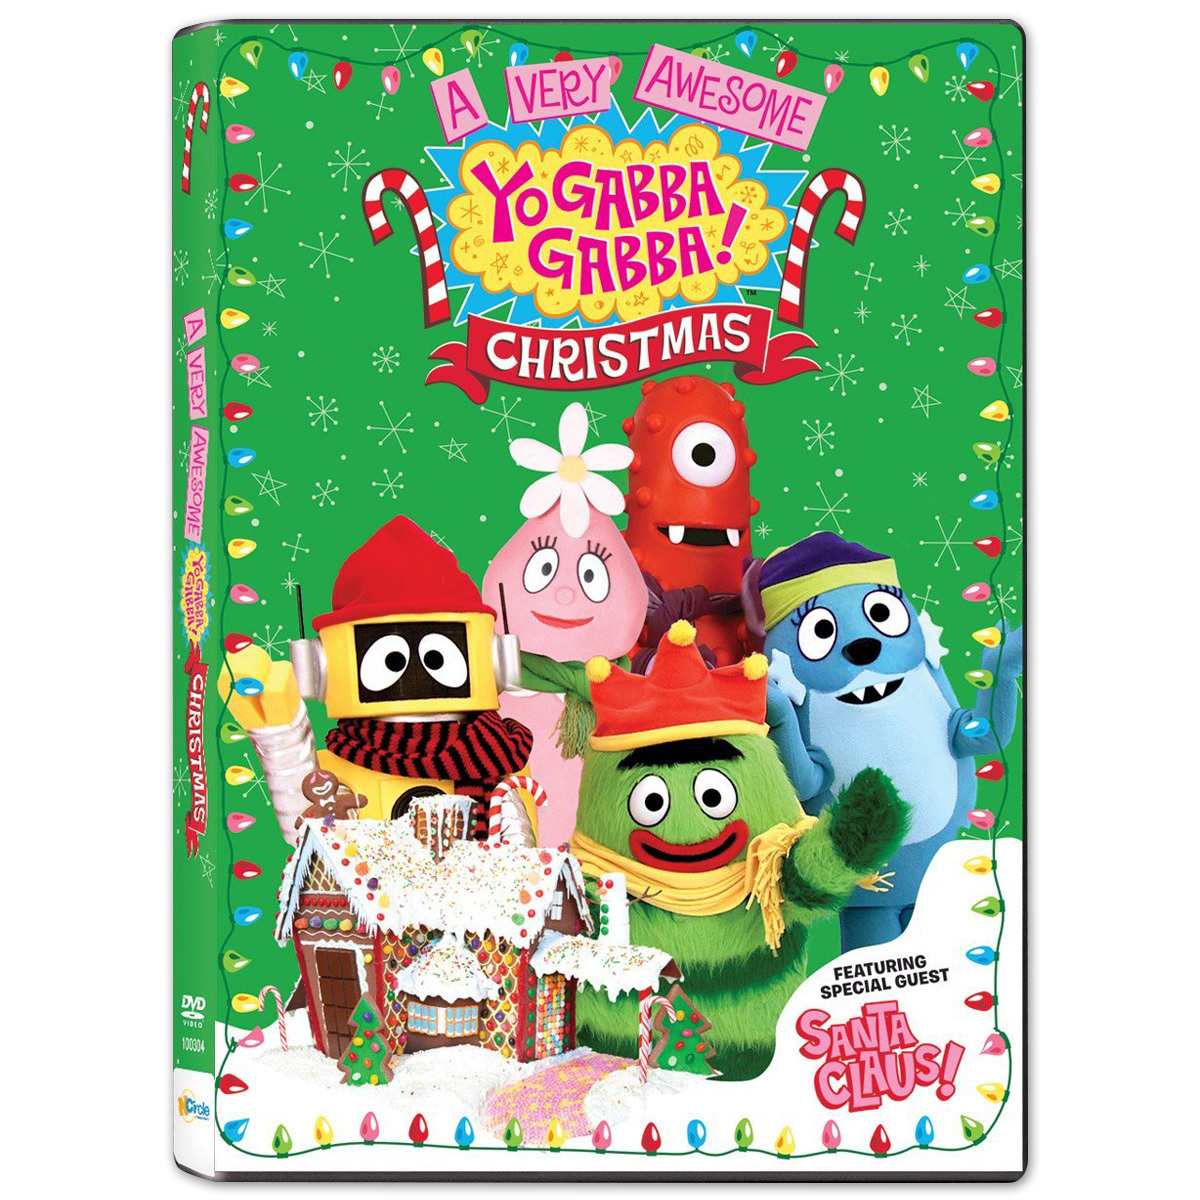 A Very Awesome Yo Gabba